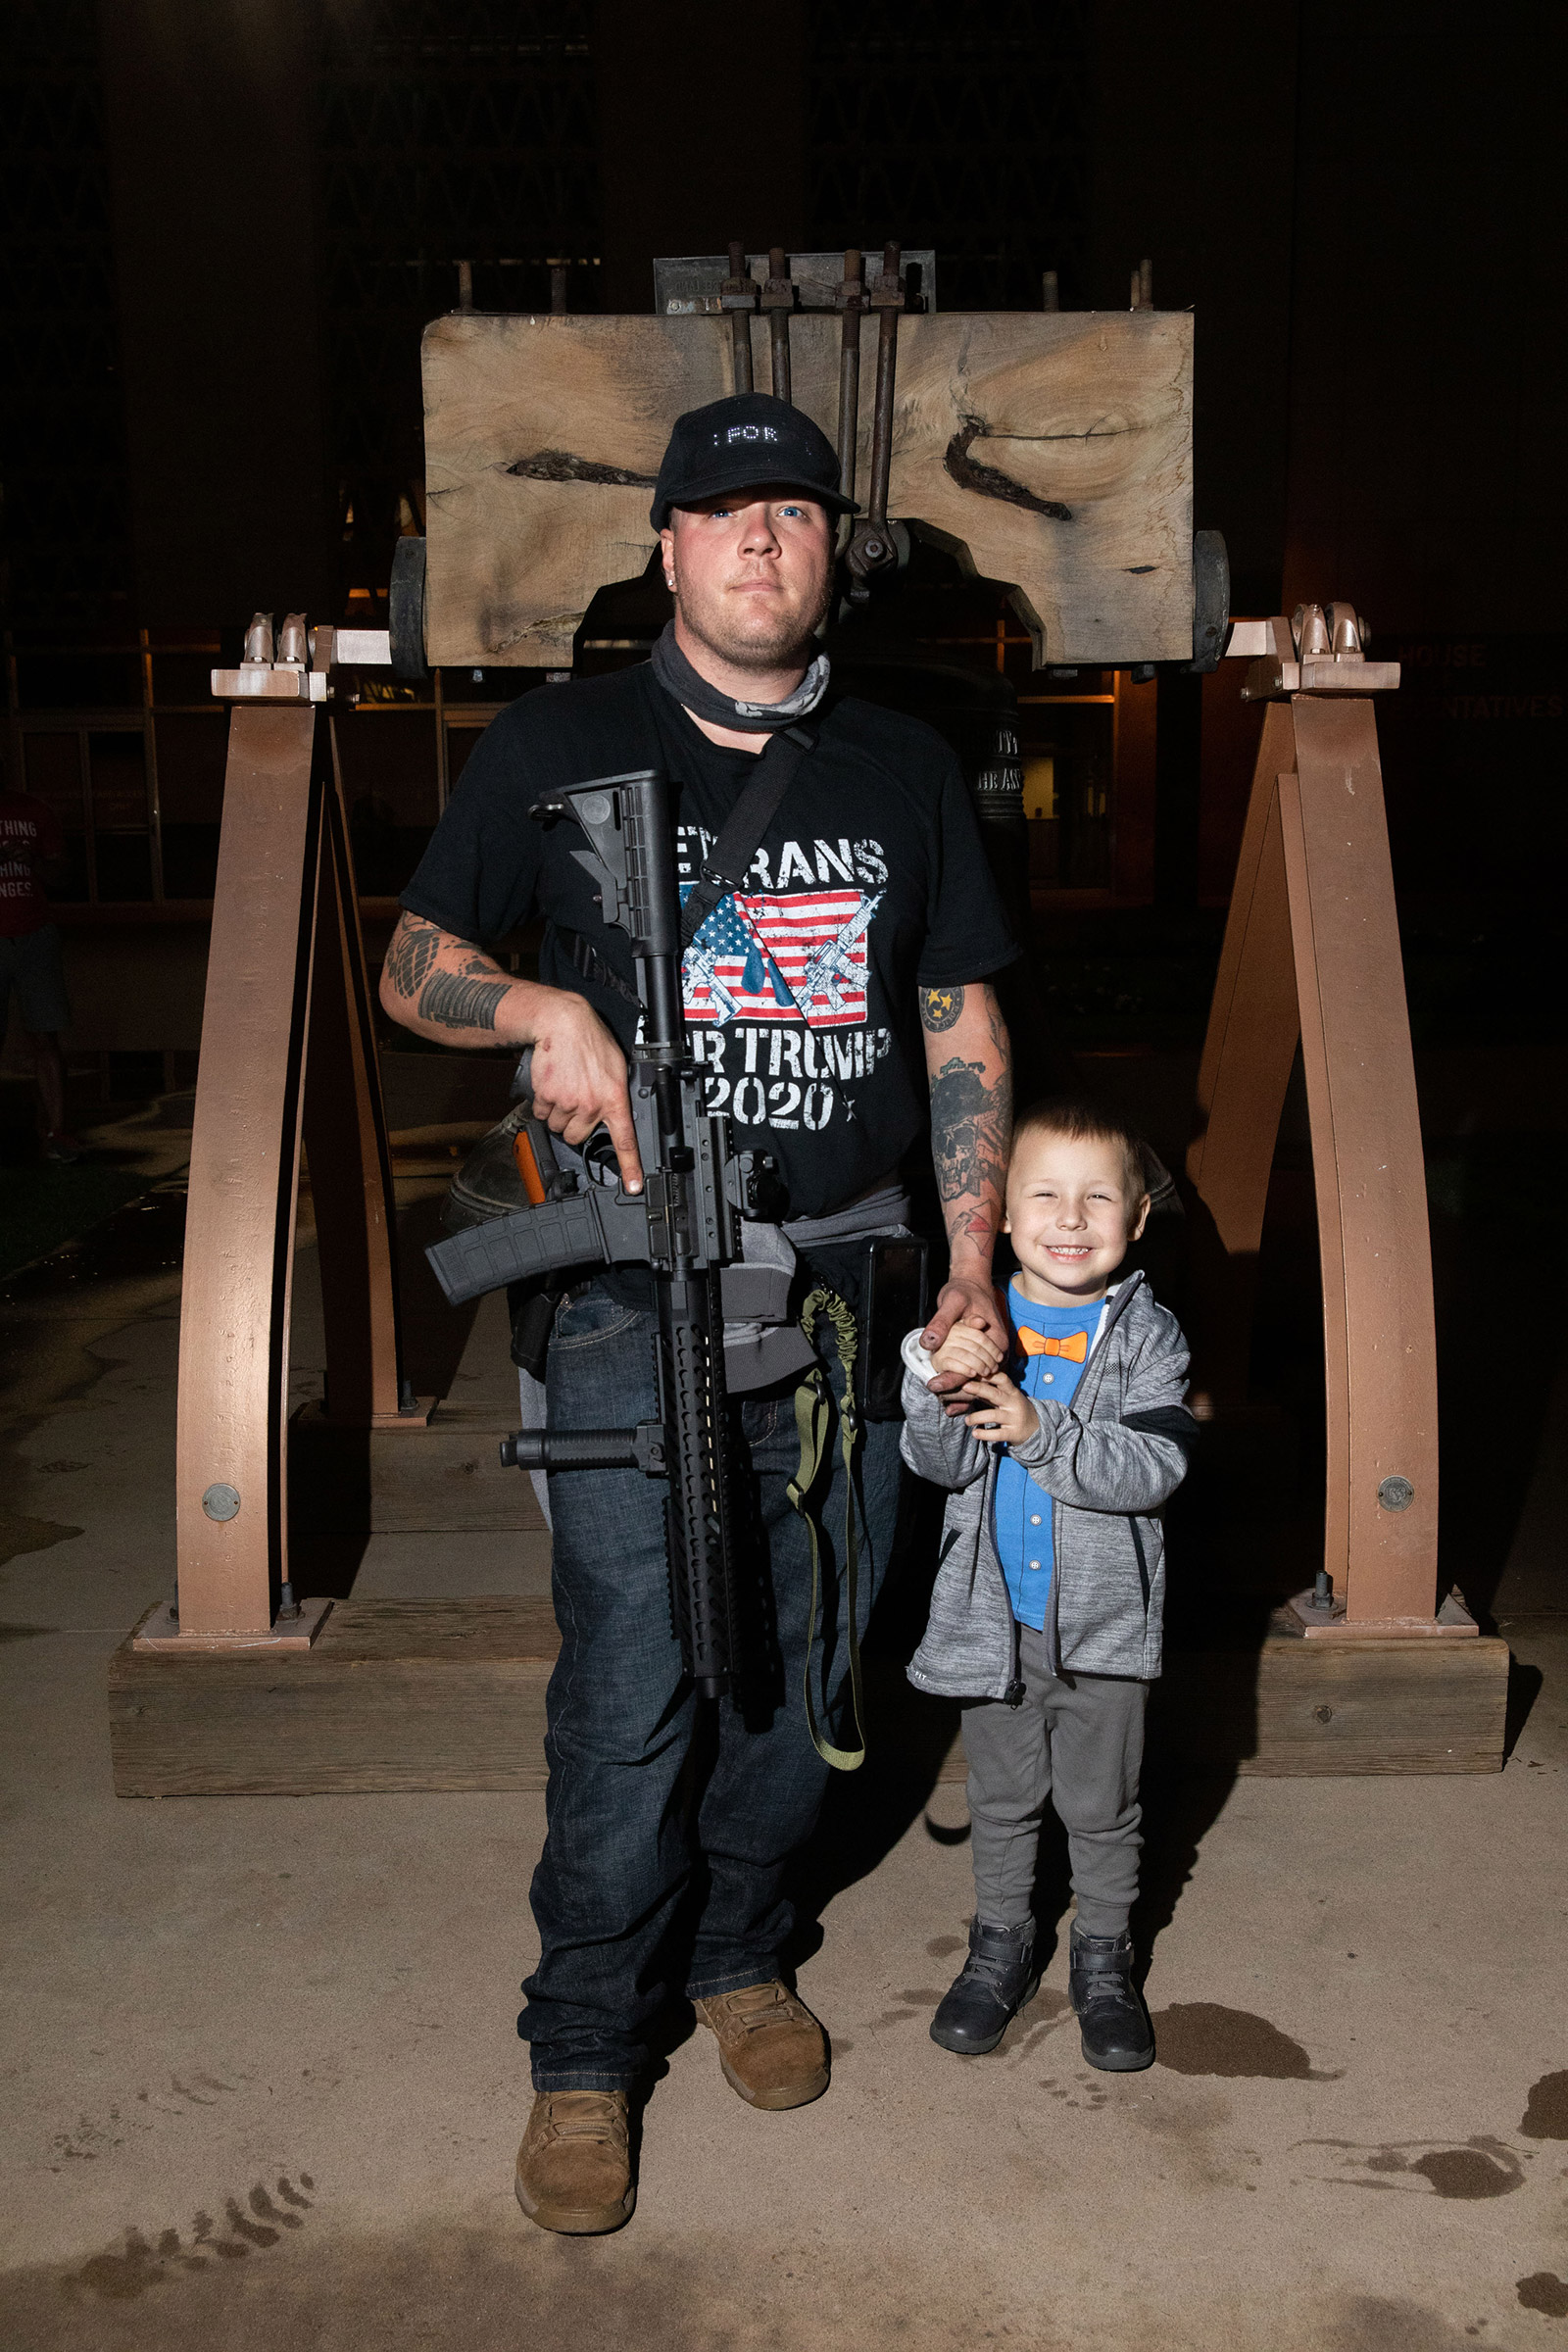 Aiden and his son at the Arizona State Capitol in Phoenix, AZ on November 4, 2020